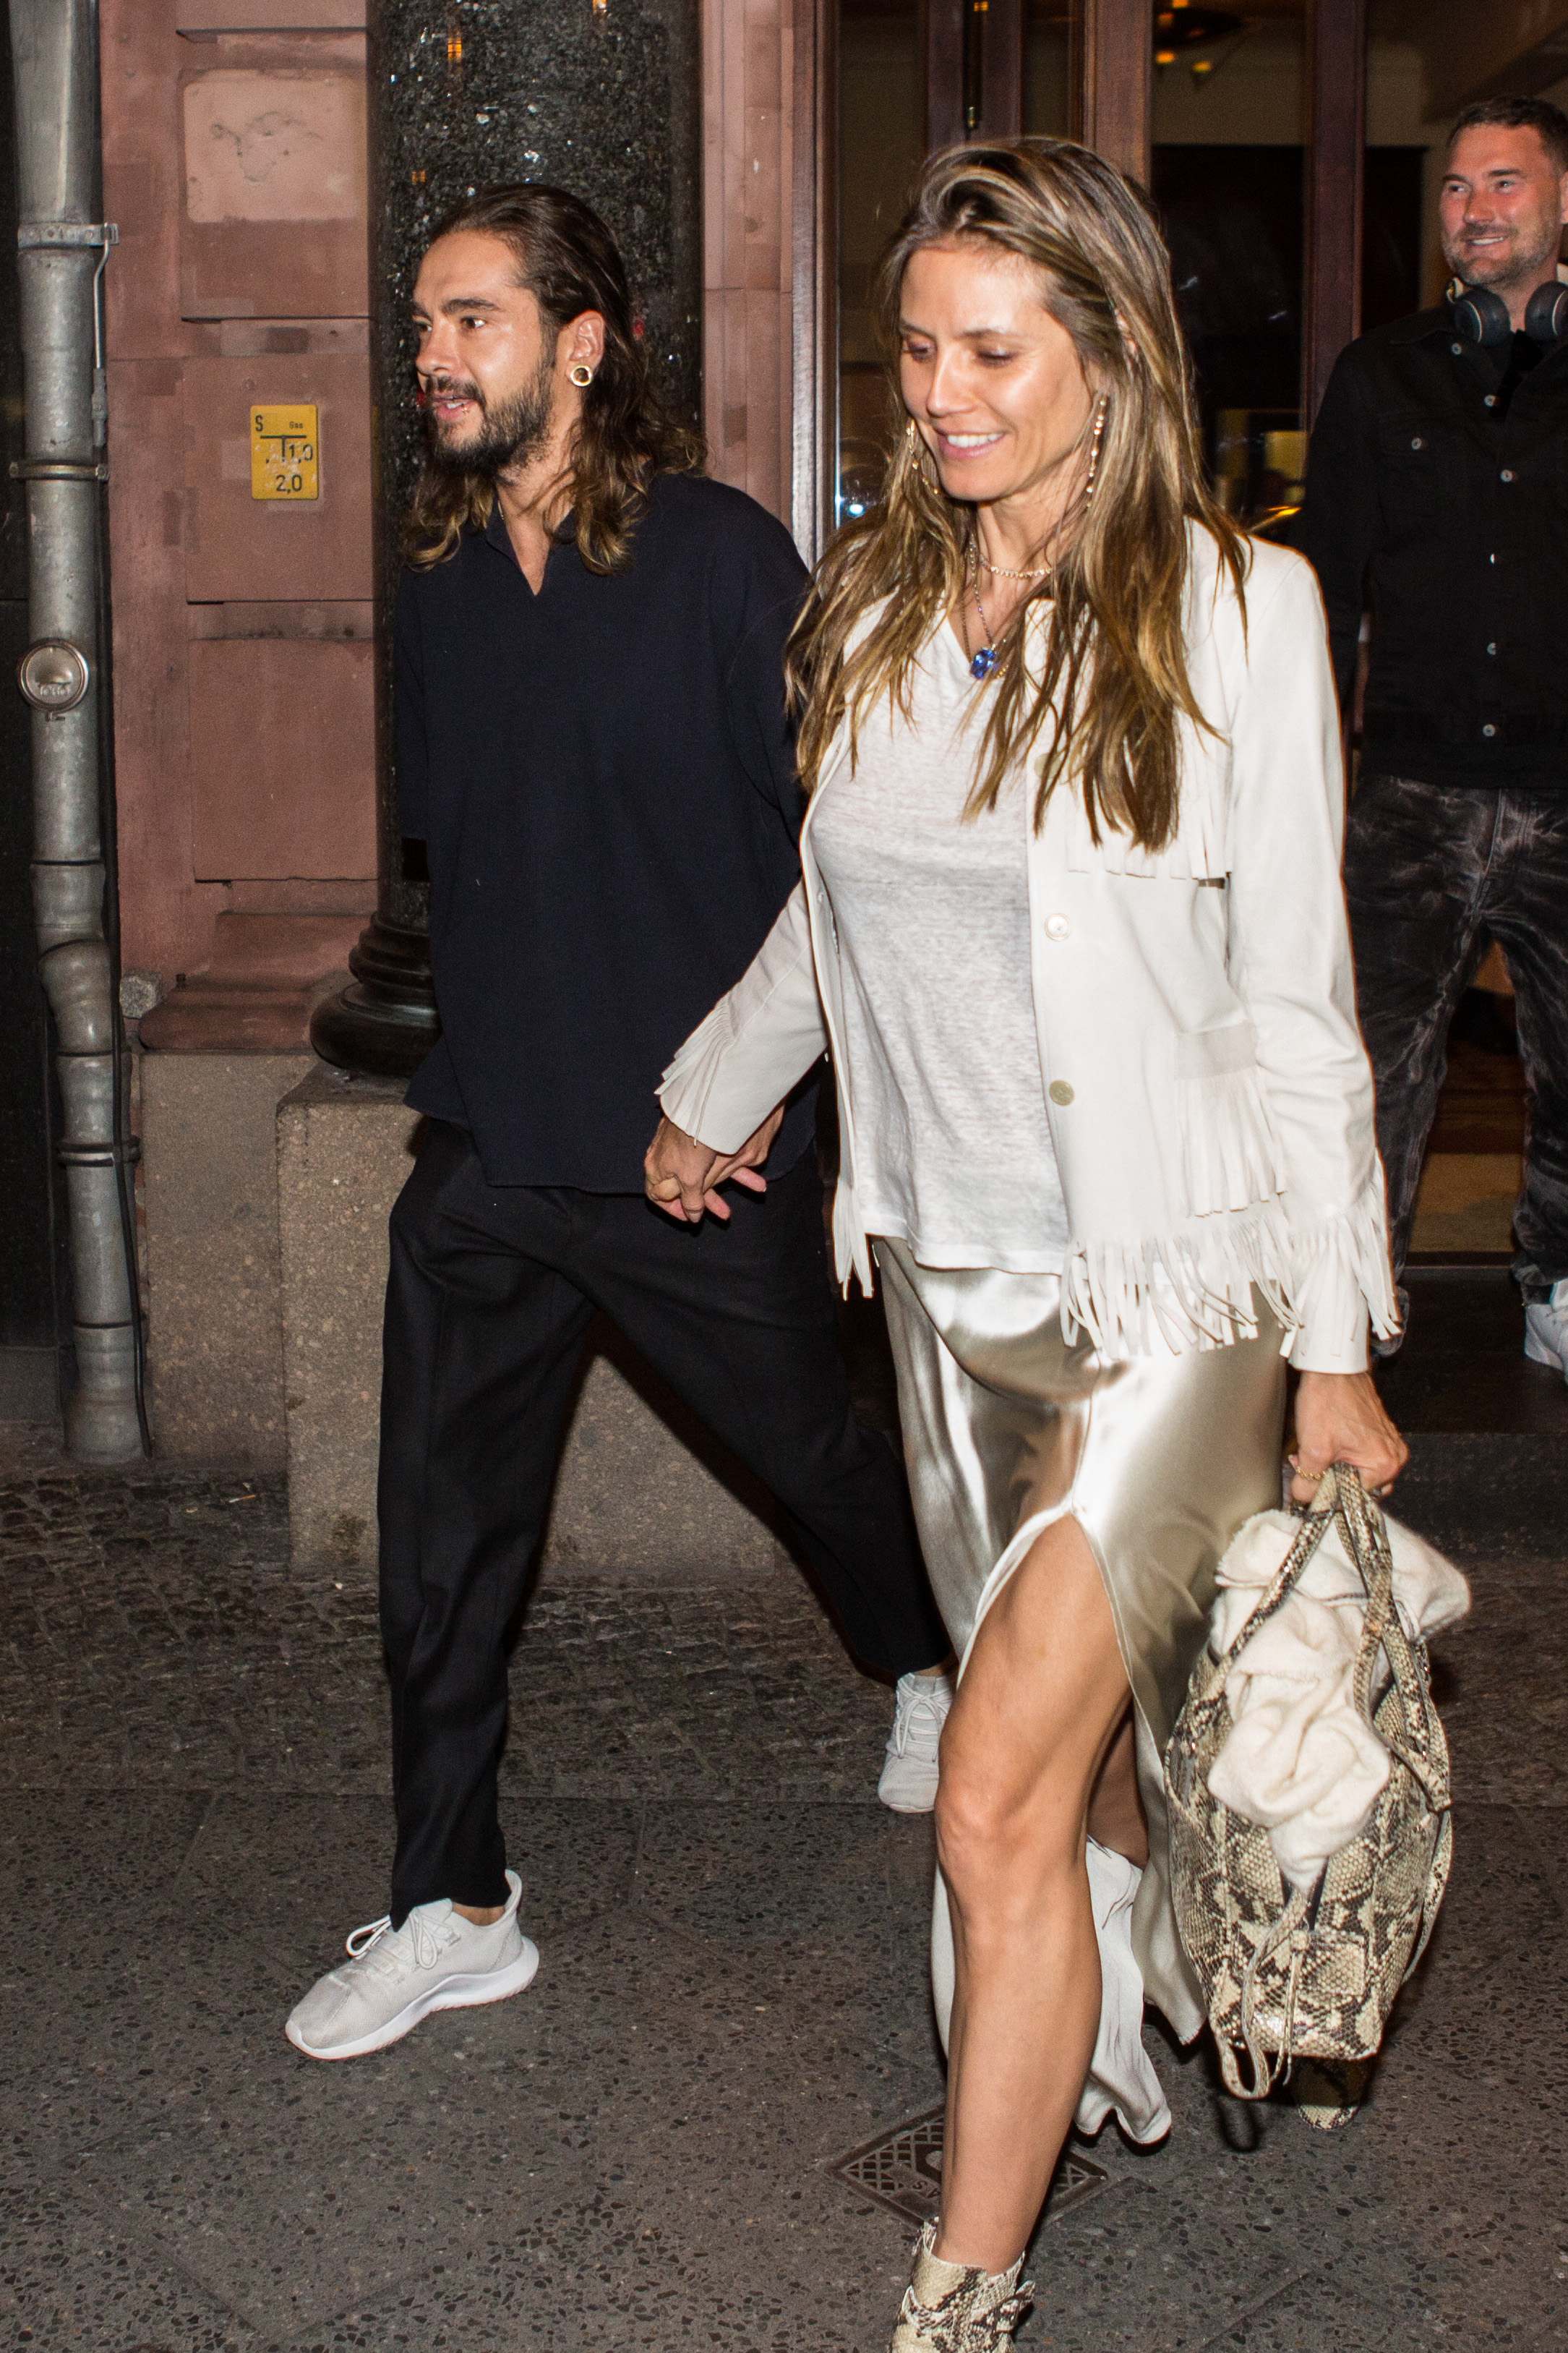 EXCLUSIVE: **PREMIUM EXCLUSIVE RATES APPLY** Heidi Klum and Tom Kaulitz at the Borchardt Restaurant in Berlin, Germany. The supermodel and the musician decided to dine at the Borchardt Restaurant on Sunday night.In the restaurant they kissed again and again and exchange caresses. When they left the restaurant, they came out in good spirits with Tom's brother Bill Kaulitz and fashion designer Michael Michalski <P> Pictured: Heidi Klum, Tom Kaulitz, Michael Michalski <B>Ref: SPL1689442  300418   EXCLUSIVE</B><BR/> Picture by: Splash News<BR/> </P><P> <B>Splash News and Pictures</B><BR/> Los Angeles:310-821-2666<BR/> New York:212-619-2666<BR/> London:870-934-2666<BR/> <span id=